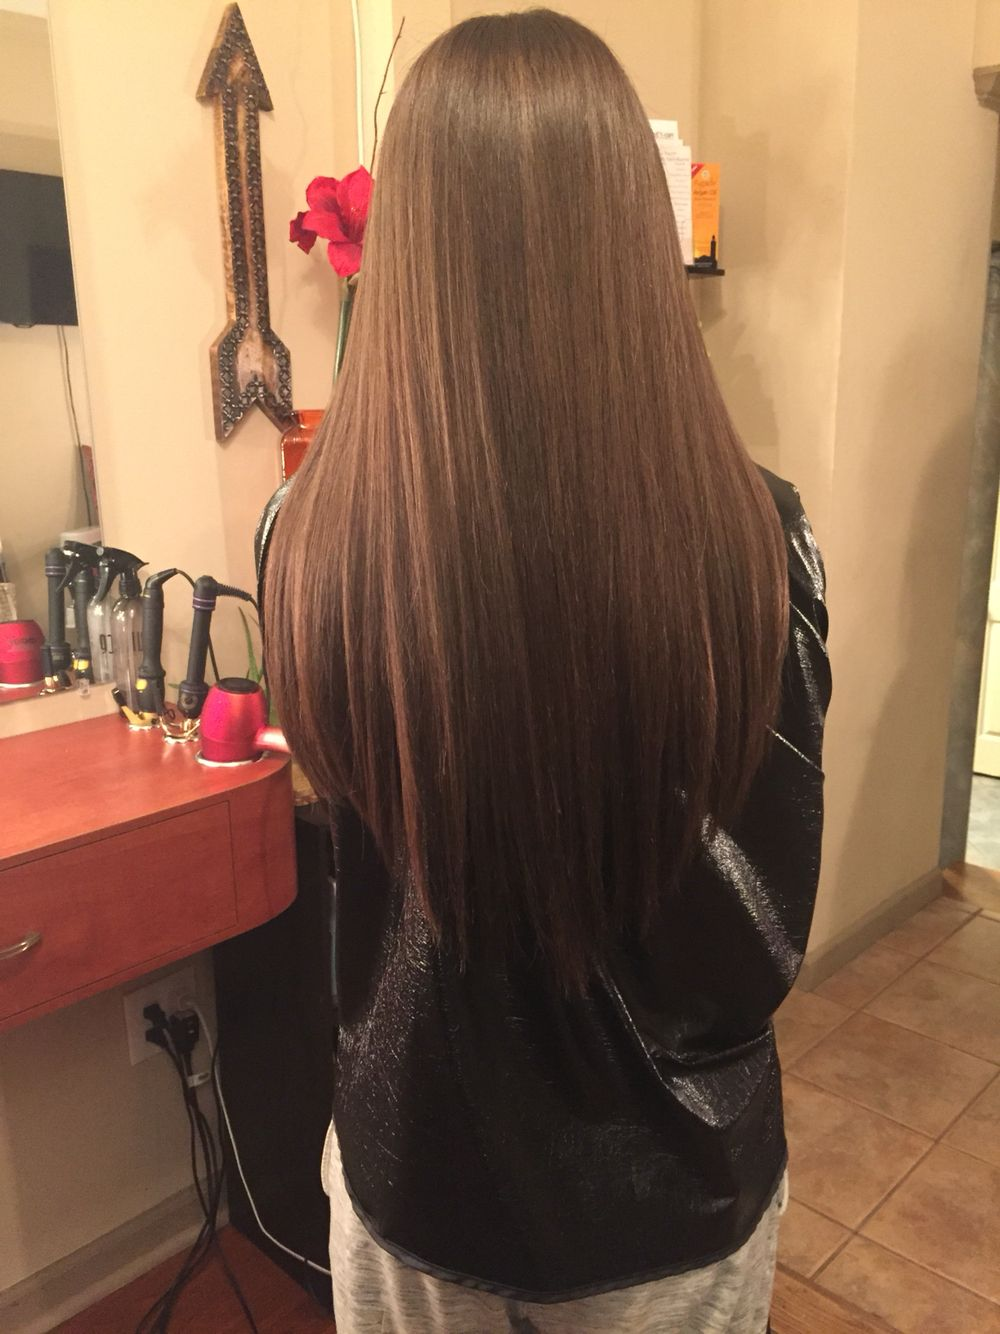 Got My Hair Done Ask For Your Hair To Be Cut In A V